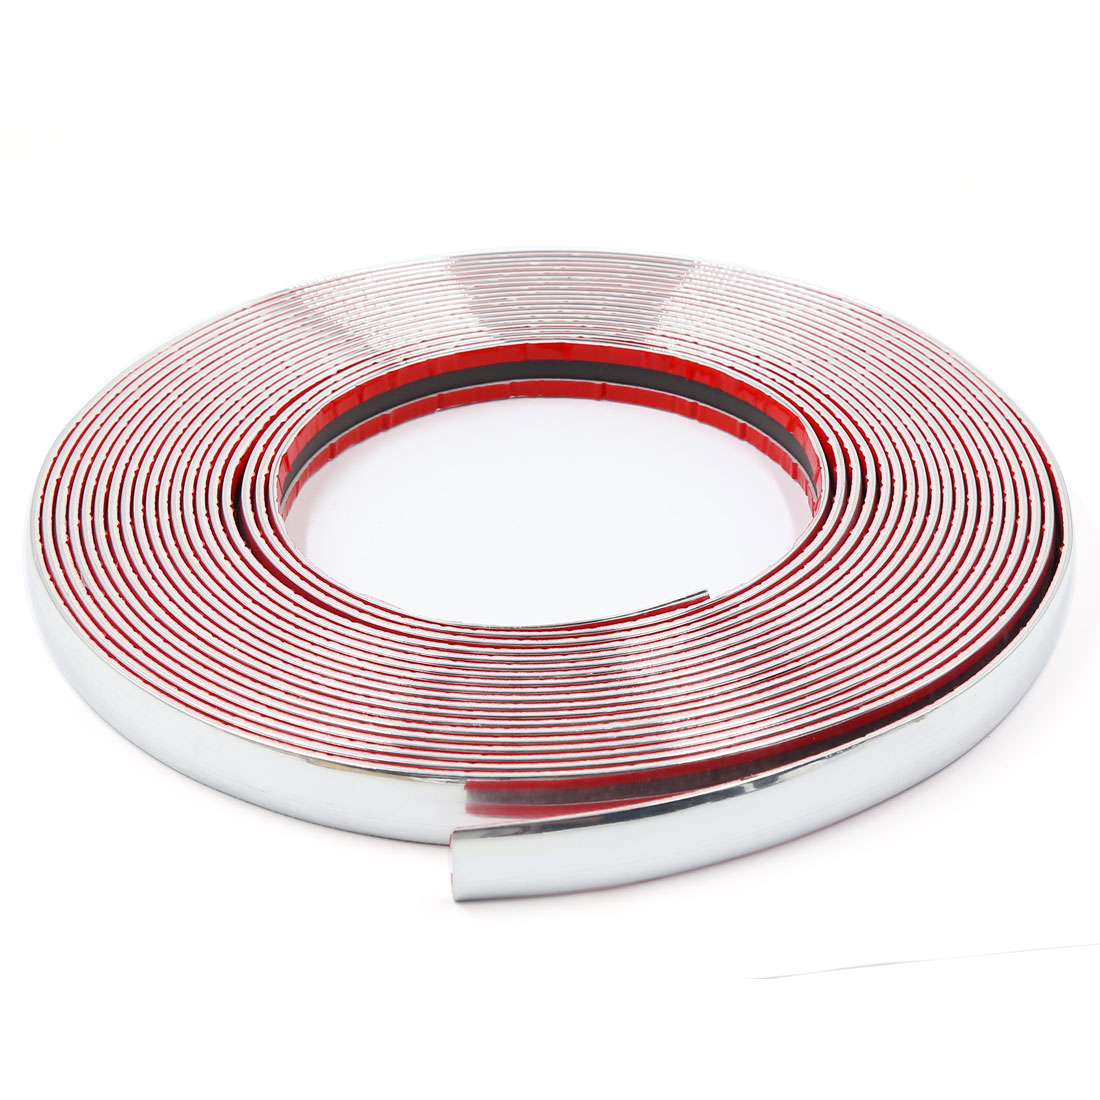 15M x 18MM Car Auto DIY Moulding Trim Strip Silver Tone for Window Bumper Grille